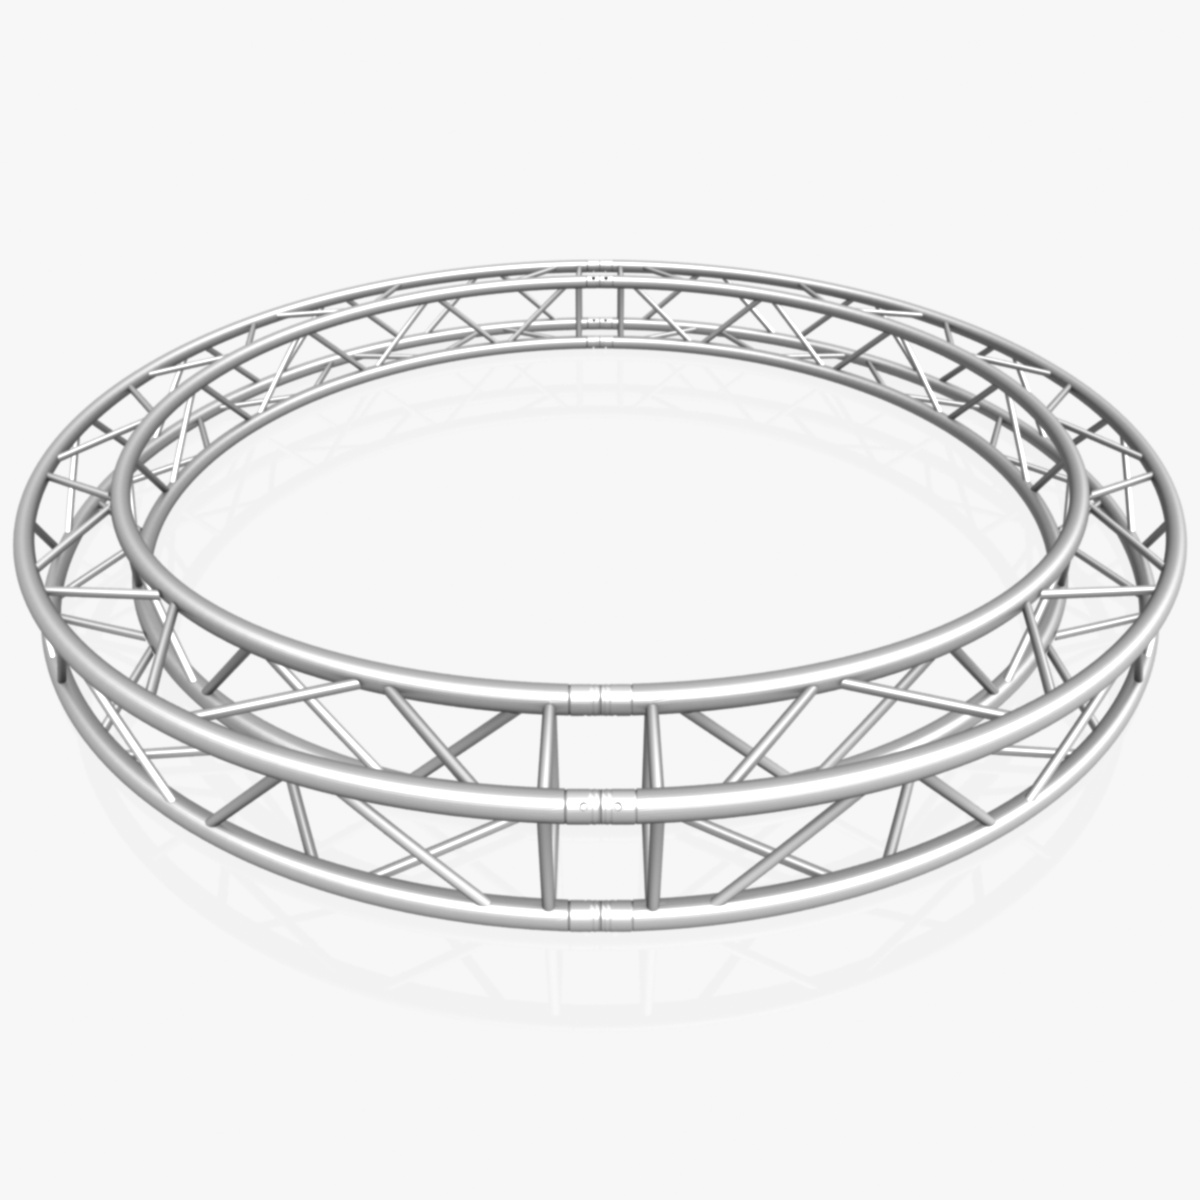 circle square truss (full diameter 300cm) 3d model 3ds max dxf fbx c4d dae  obj 252373